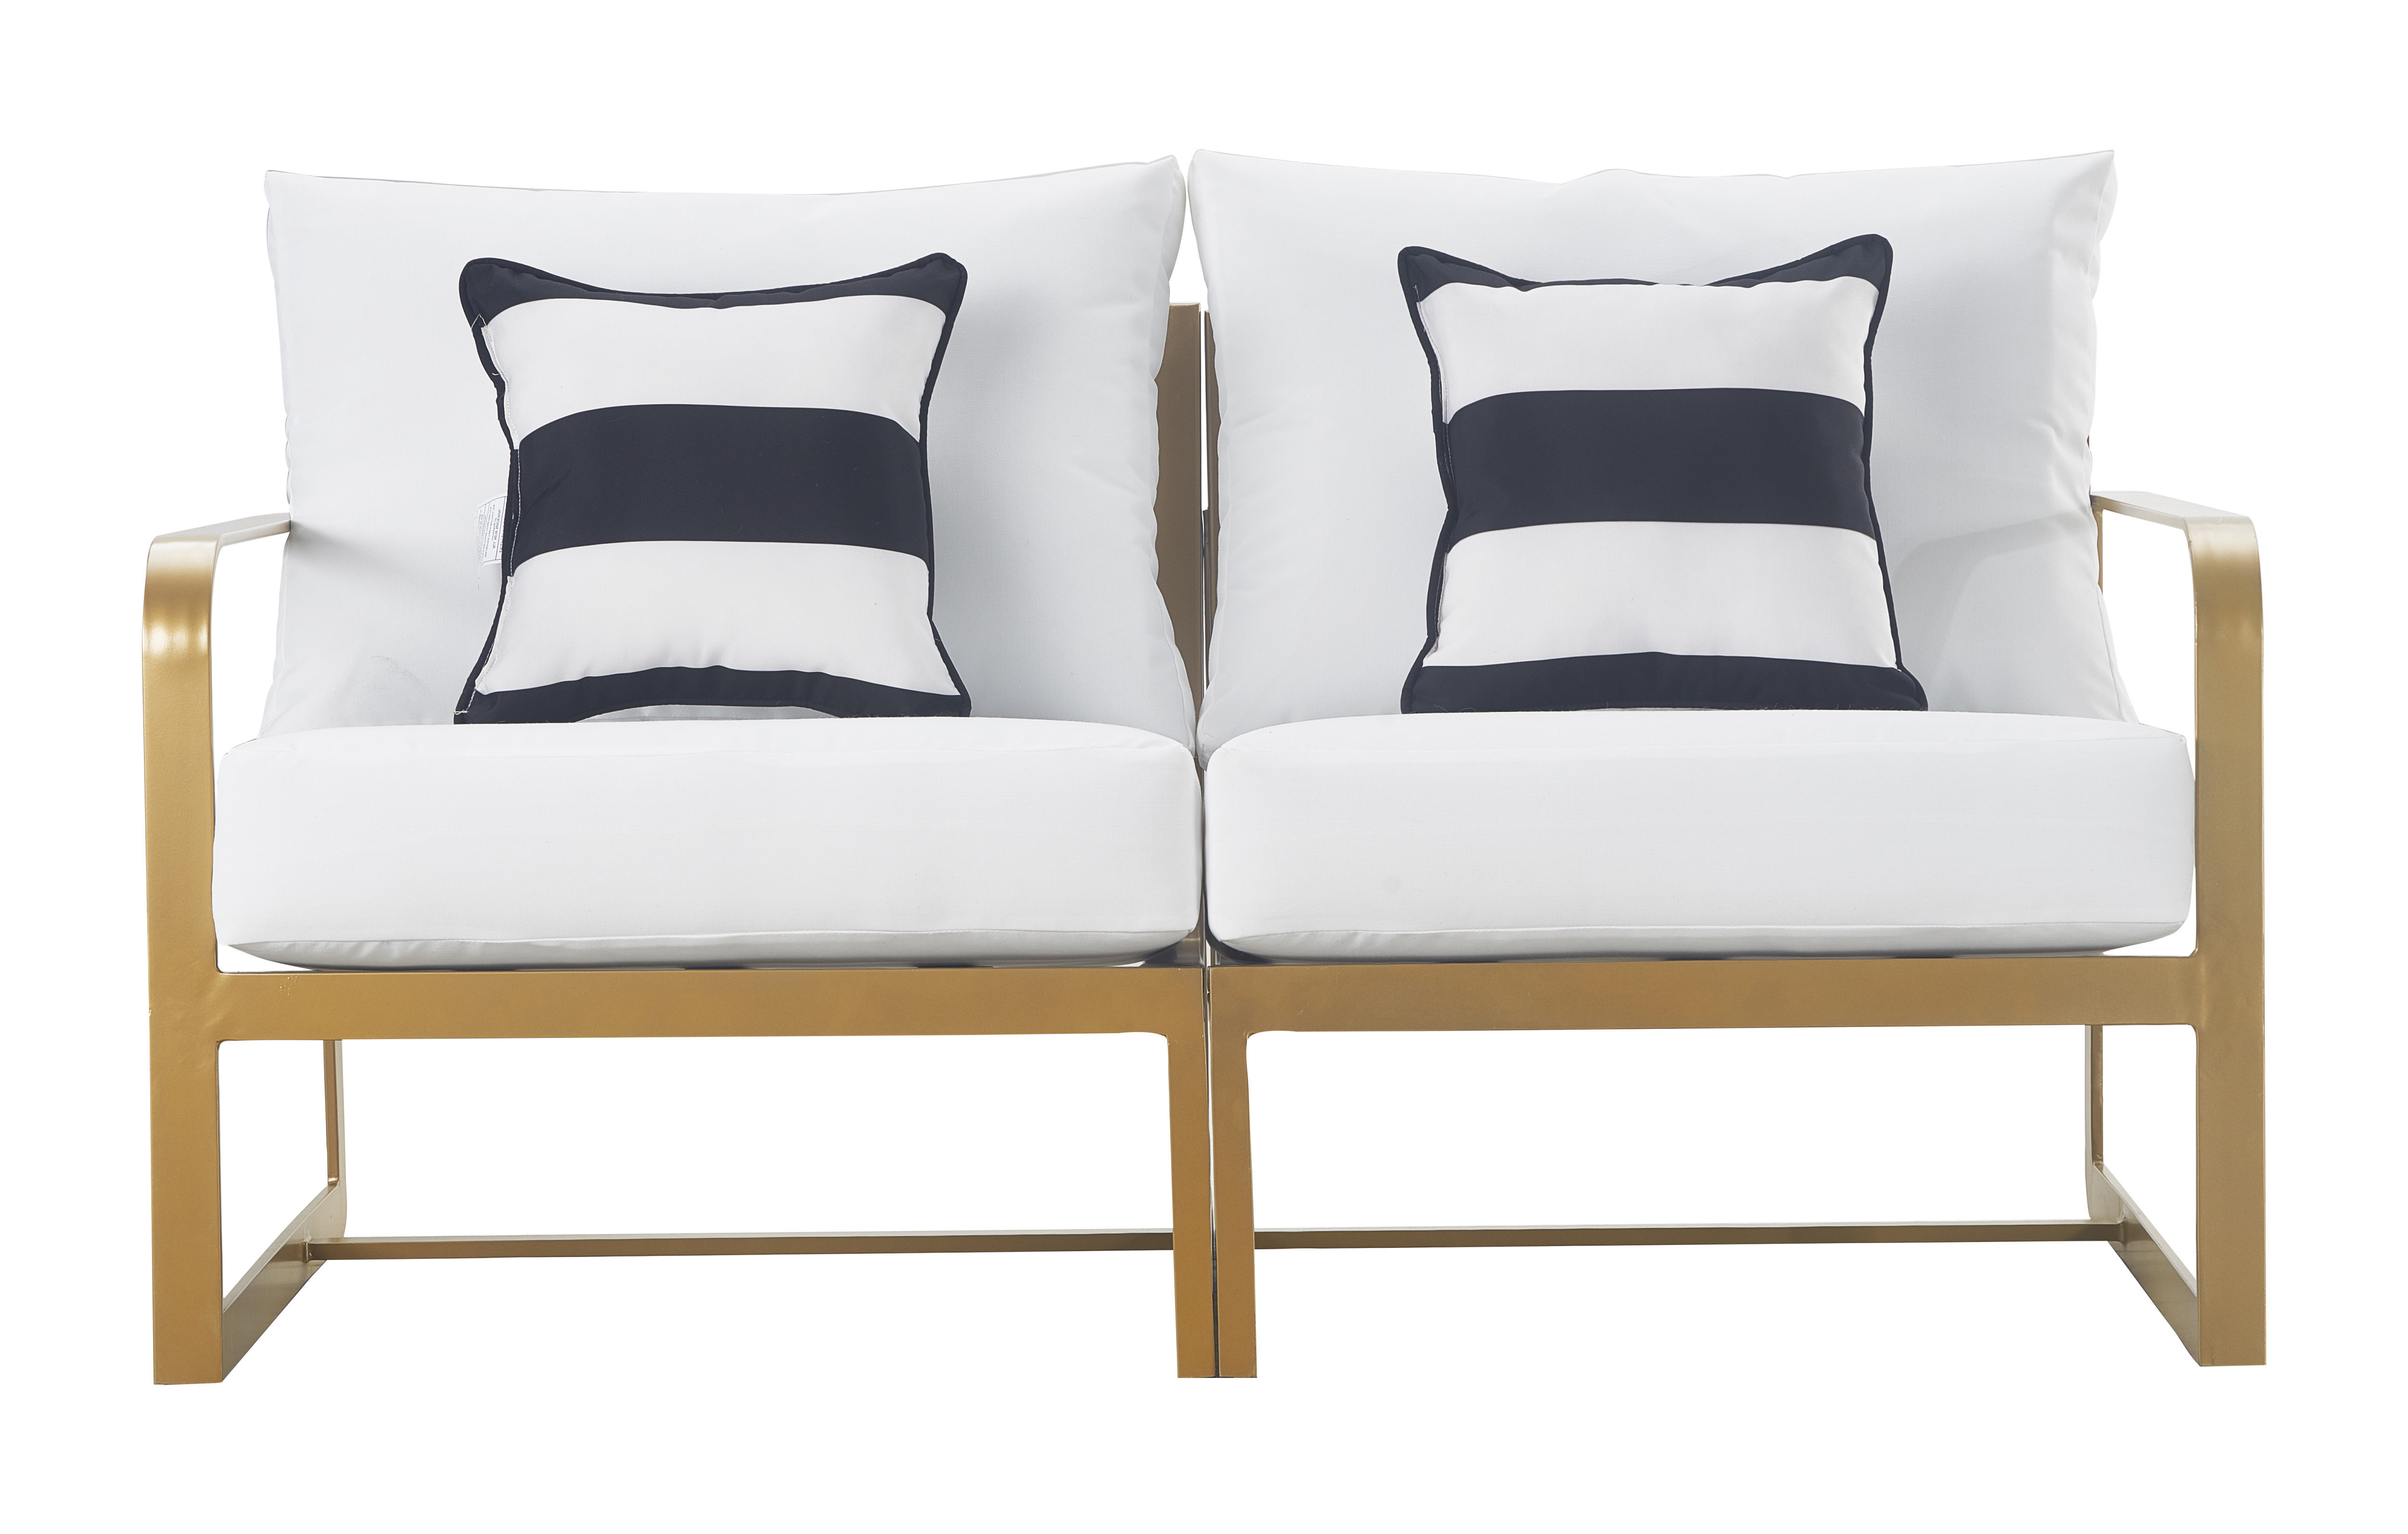 Corentin Patio Sofas For Preferred Elle Decor Mirabelle Patio Sofa With Cushion (View 3 of 20)